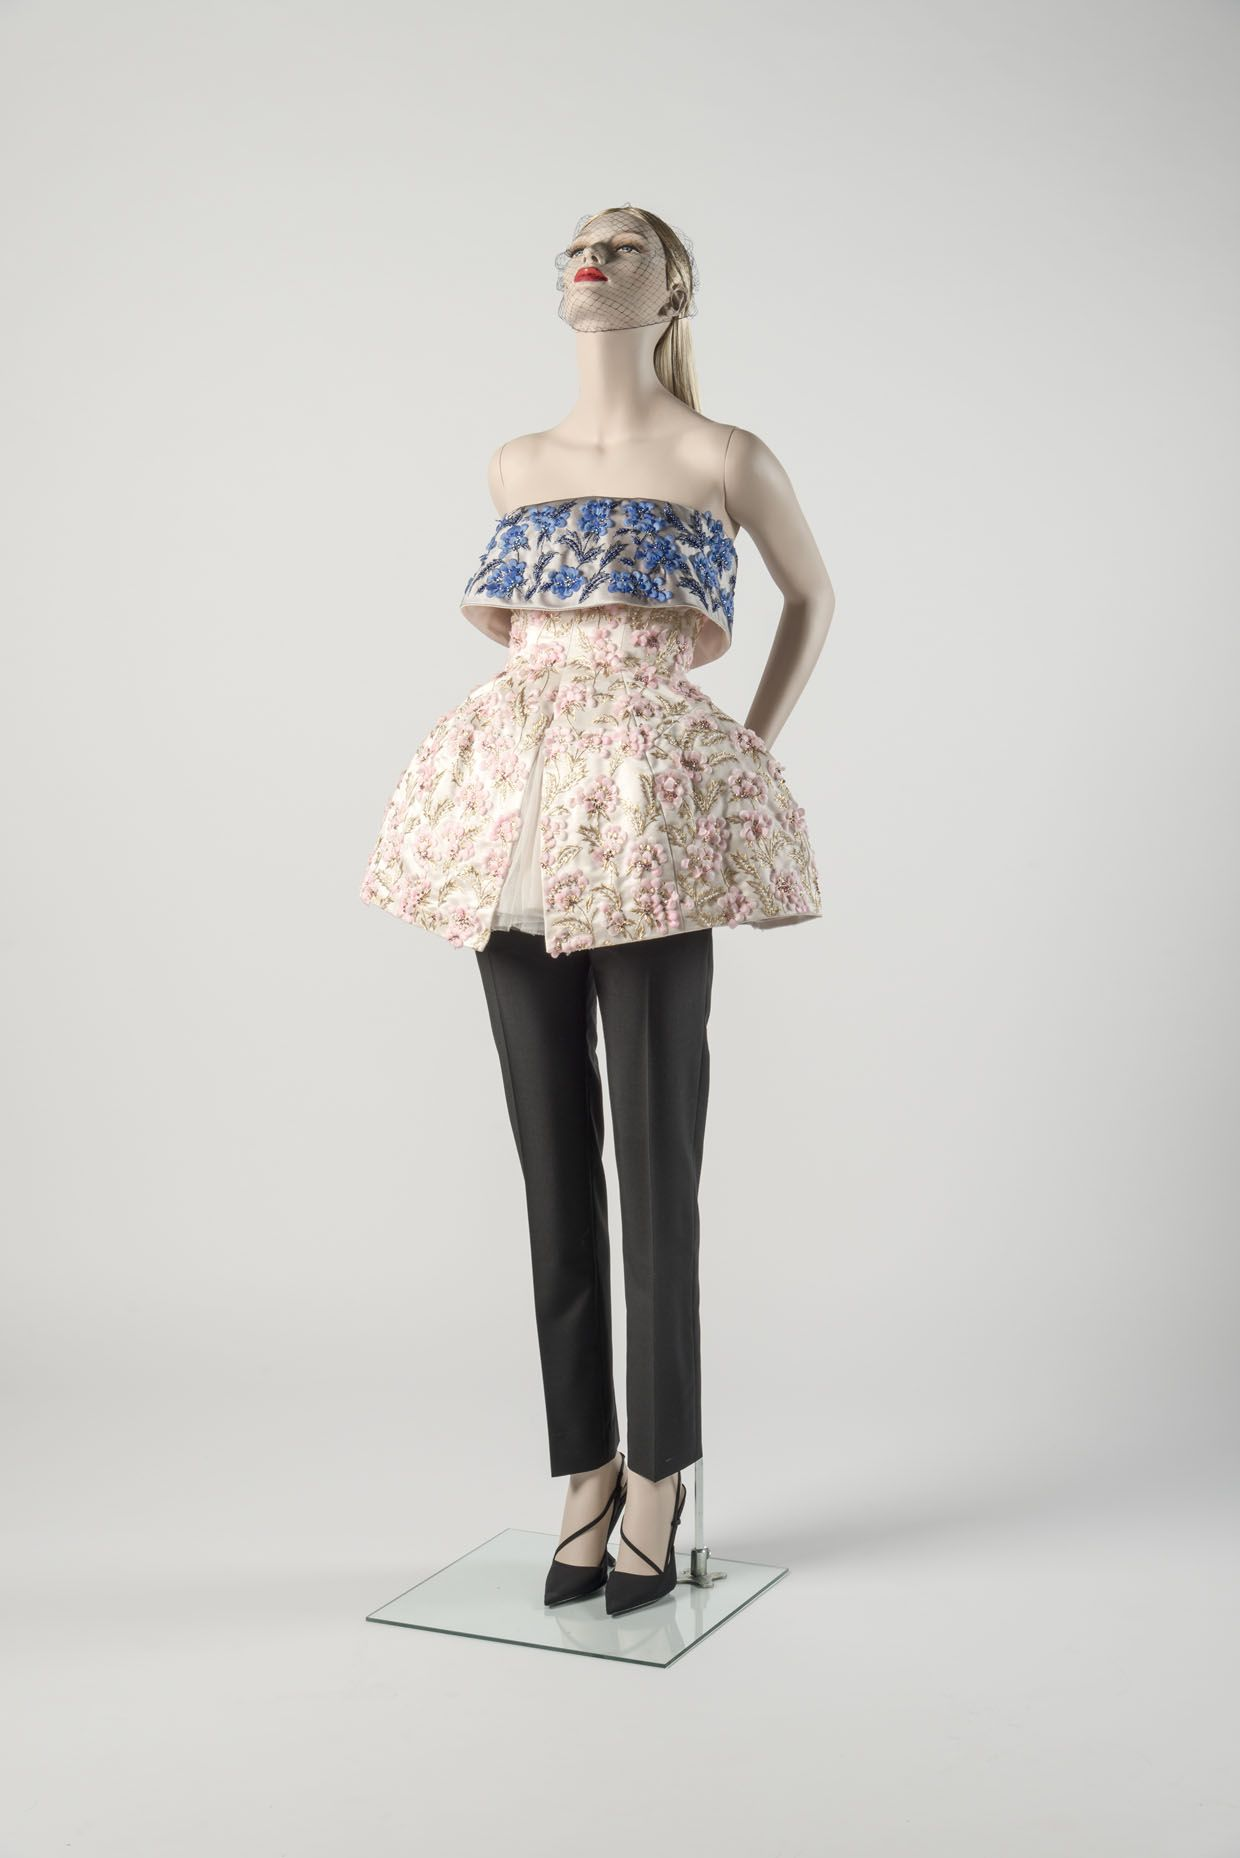 Pink and blue embroidered 'cut-off ballgown' with black trousers Raf Simons for the House of Dior, 2012 Chosen as Dress of the Year 2012 by Vanessa Friedman Fashion Museum Bath